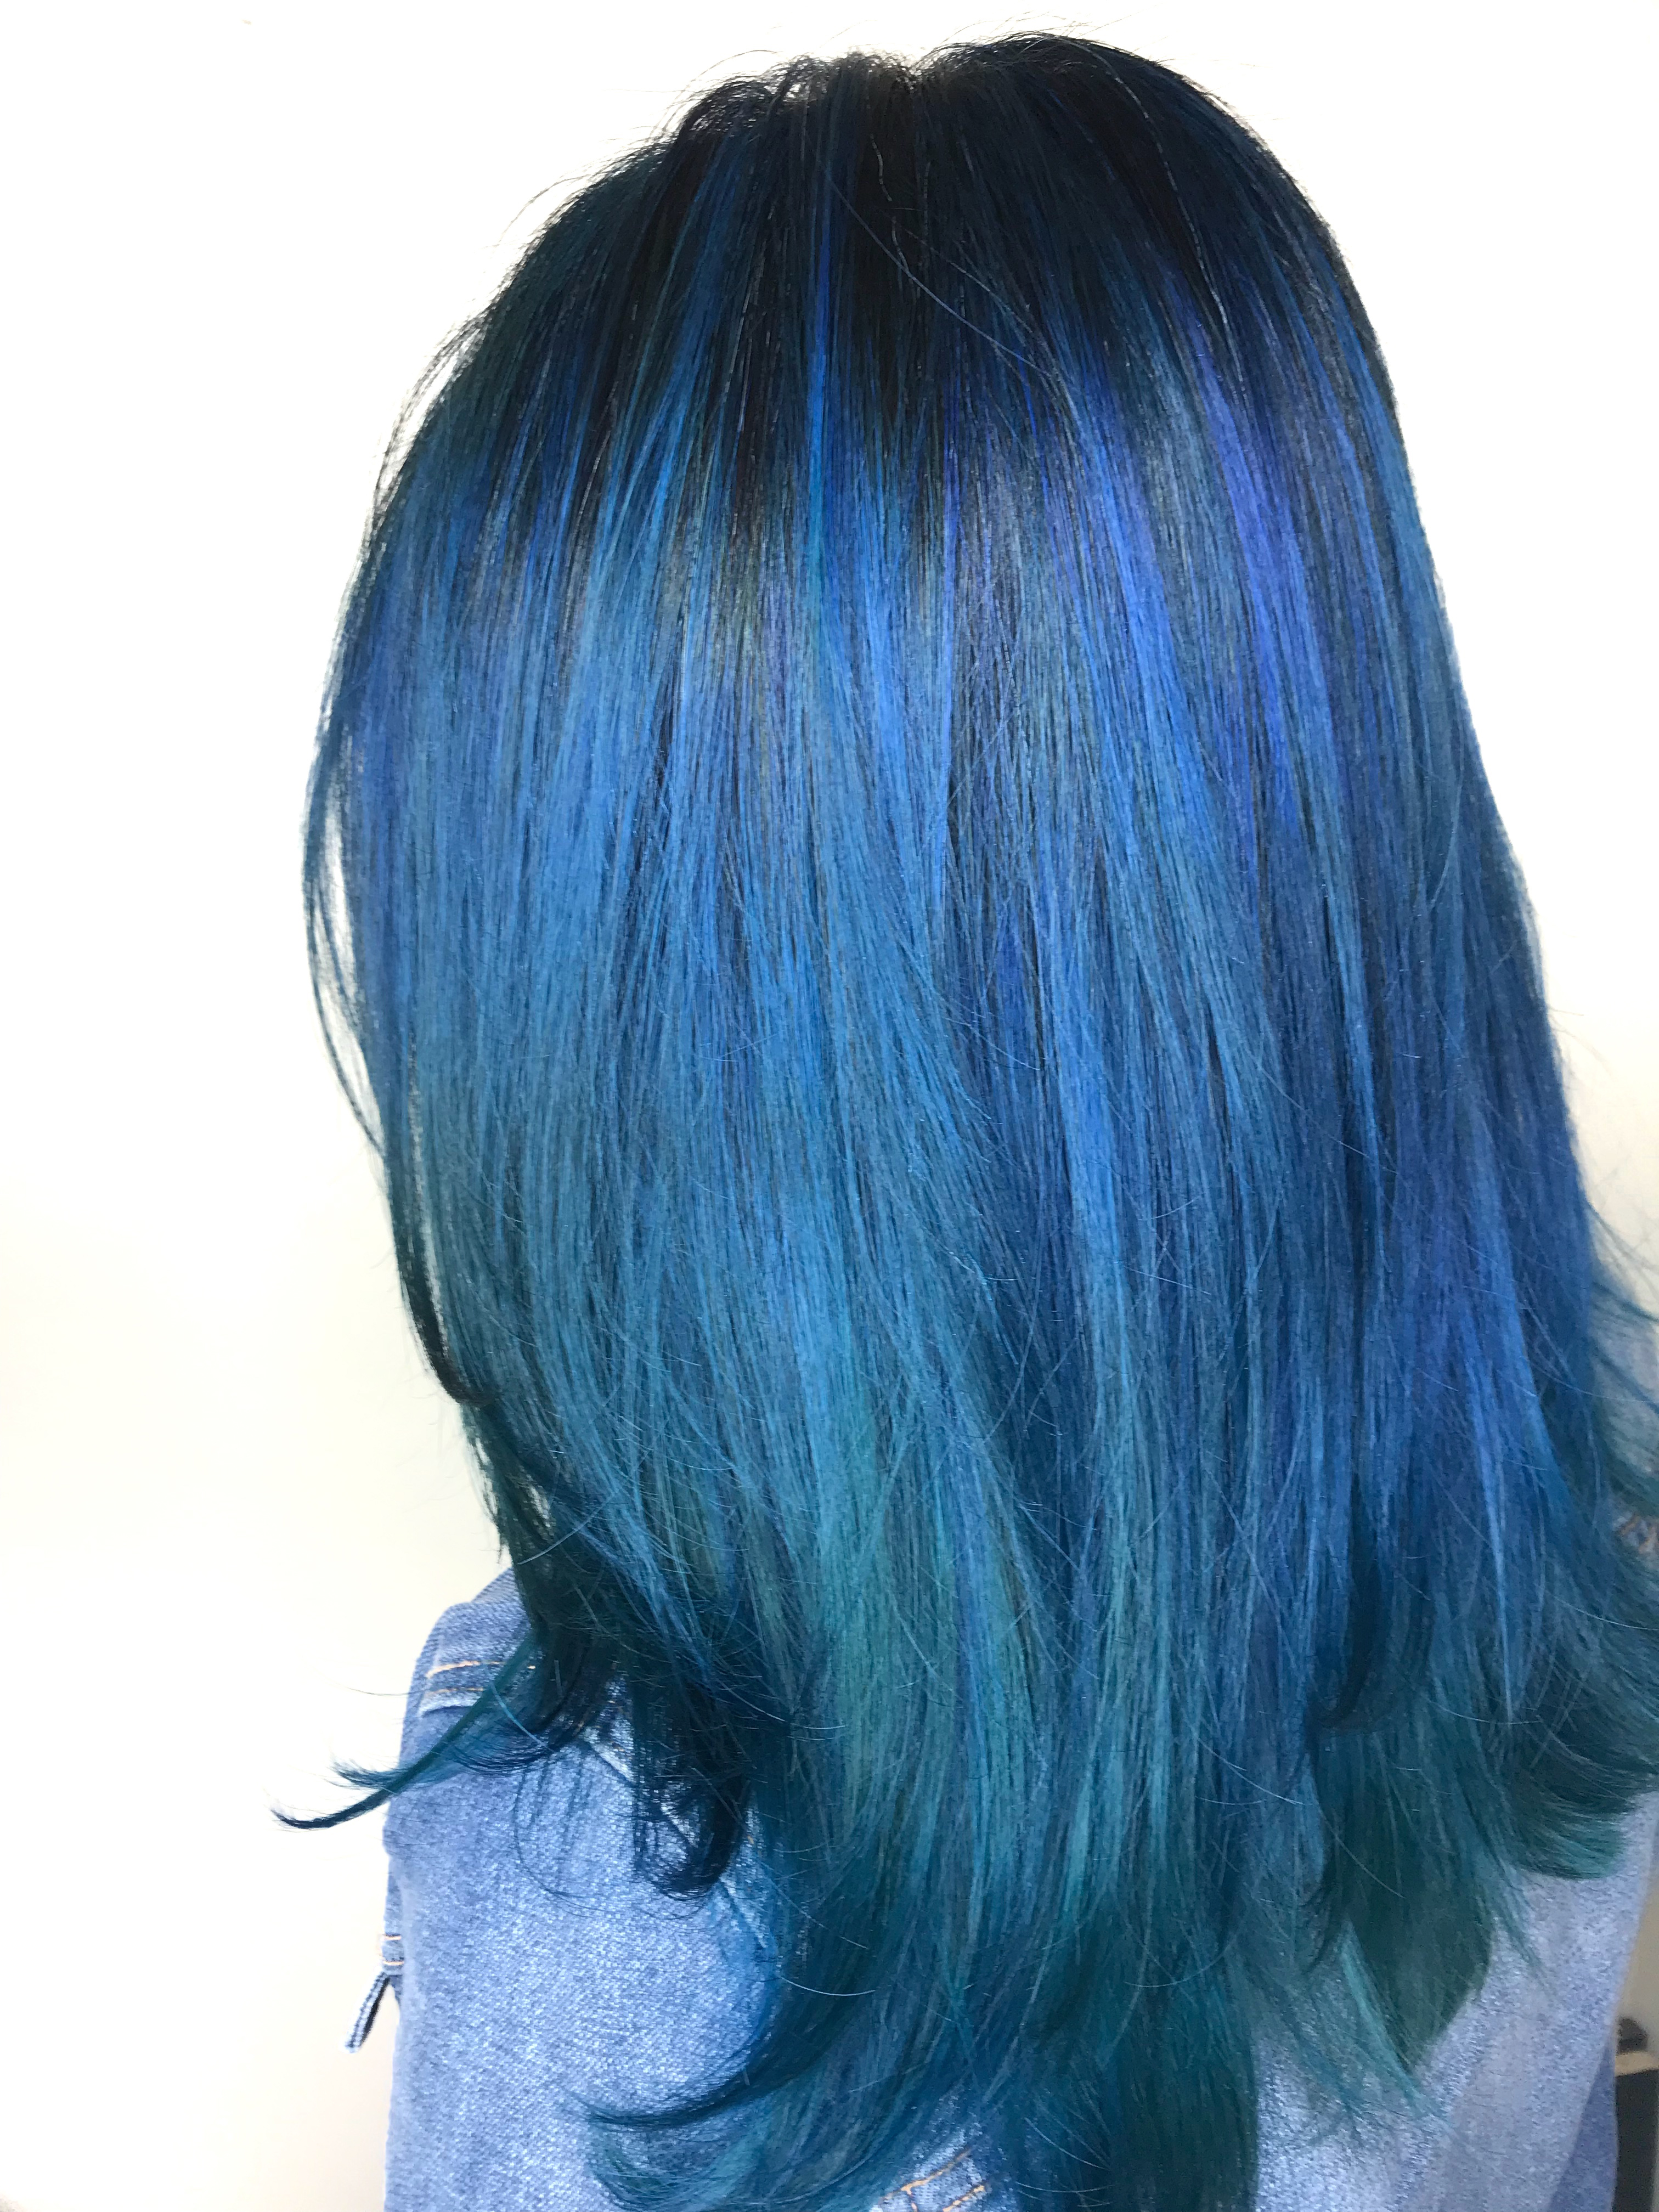 1-3MINUTE-WASH-1-20MINUTE-WASH-BLUE-BRENDABSTYLES-1